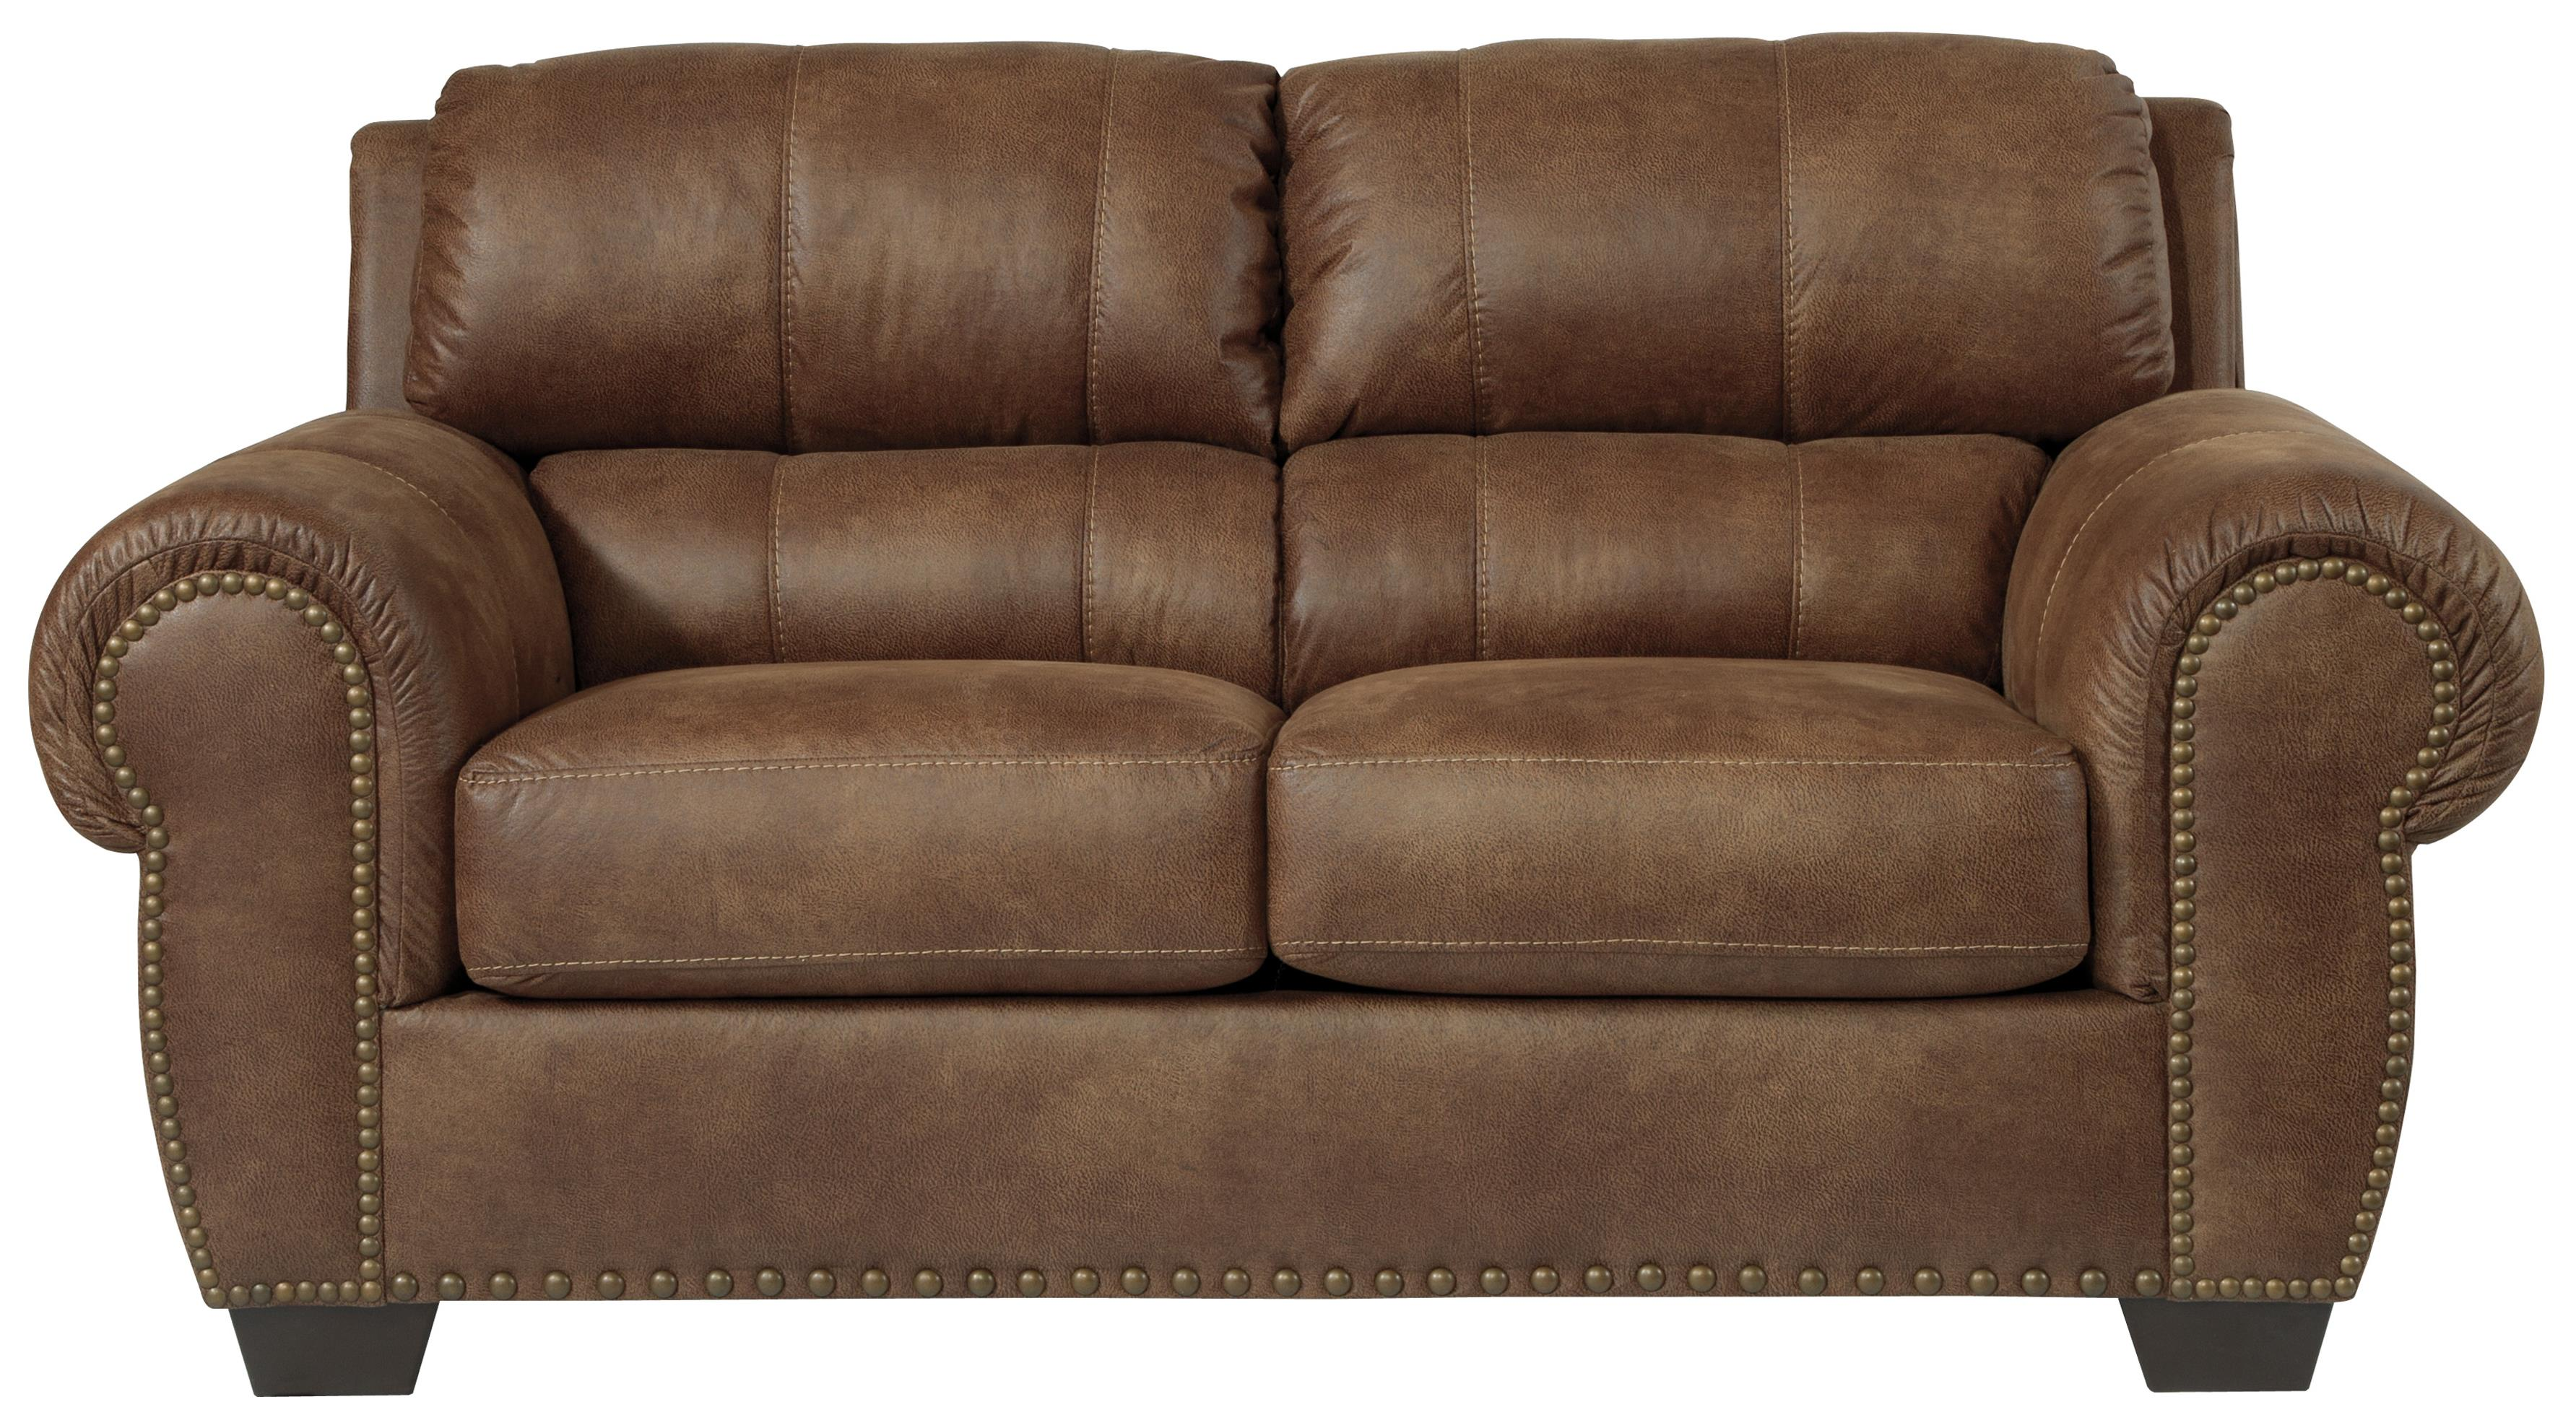 Benchcraft Burnsville Loveseat - Item Number: 9720635